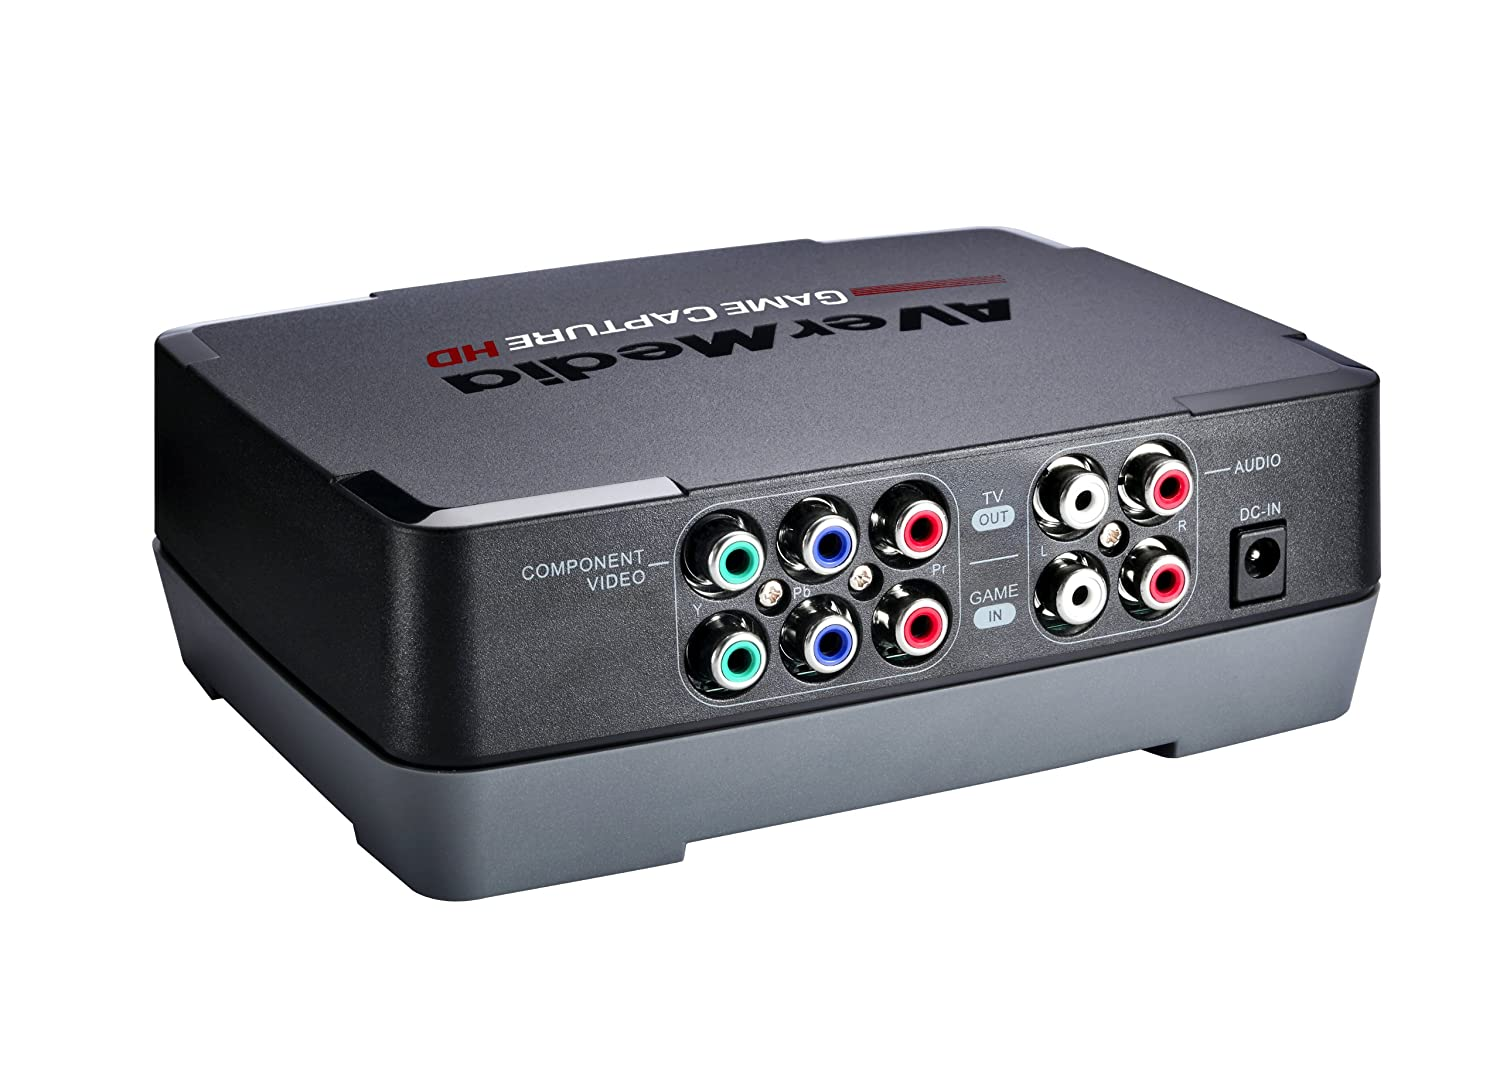 AVERMEDIA C281 Game Capture HD Record Xbox 360 and PS3 in Real Time with up to 1080p resolution